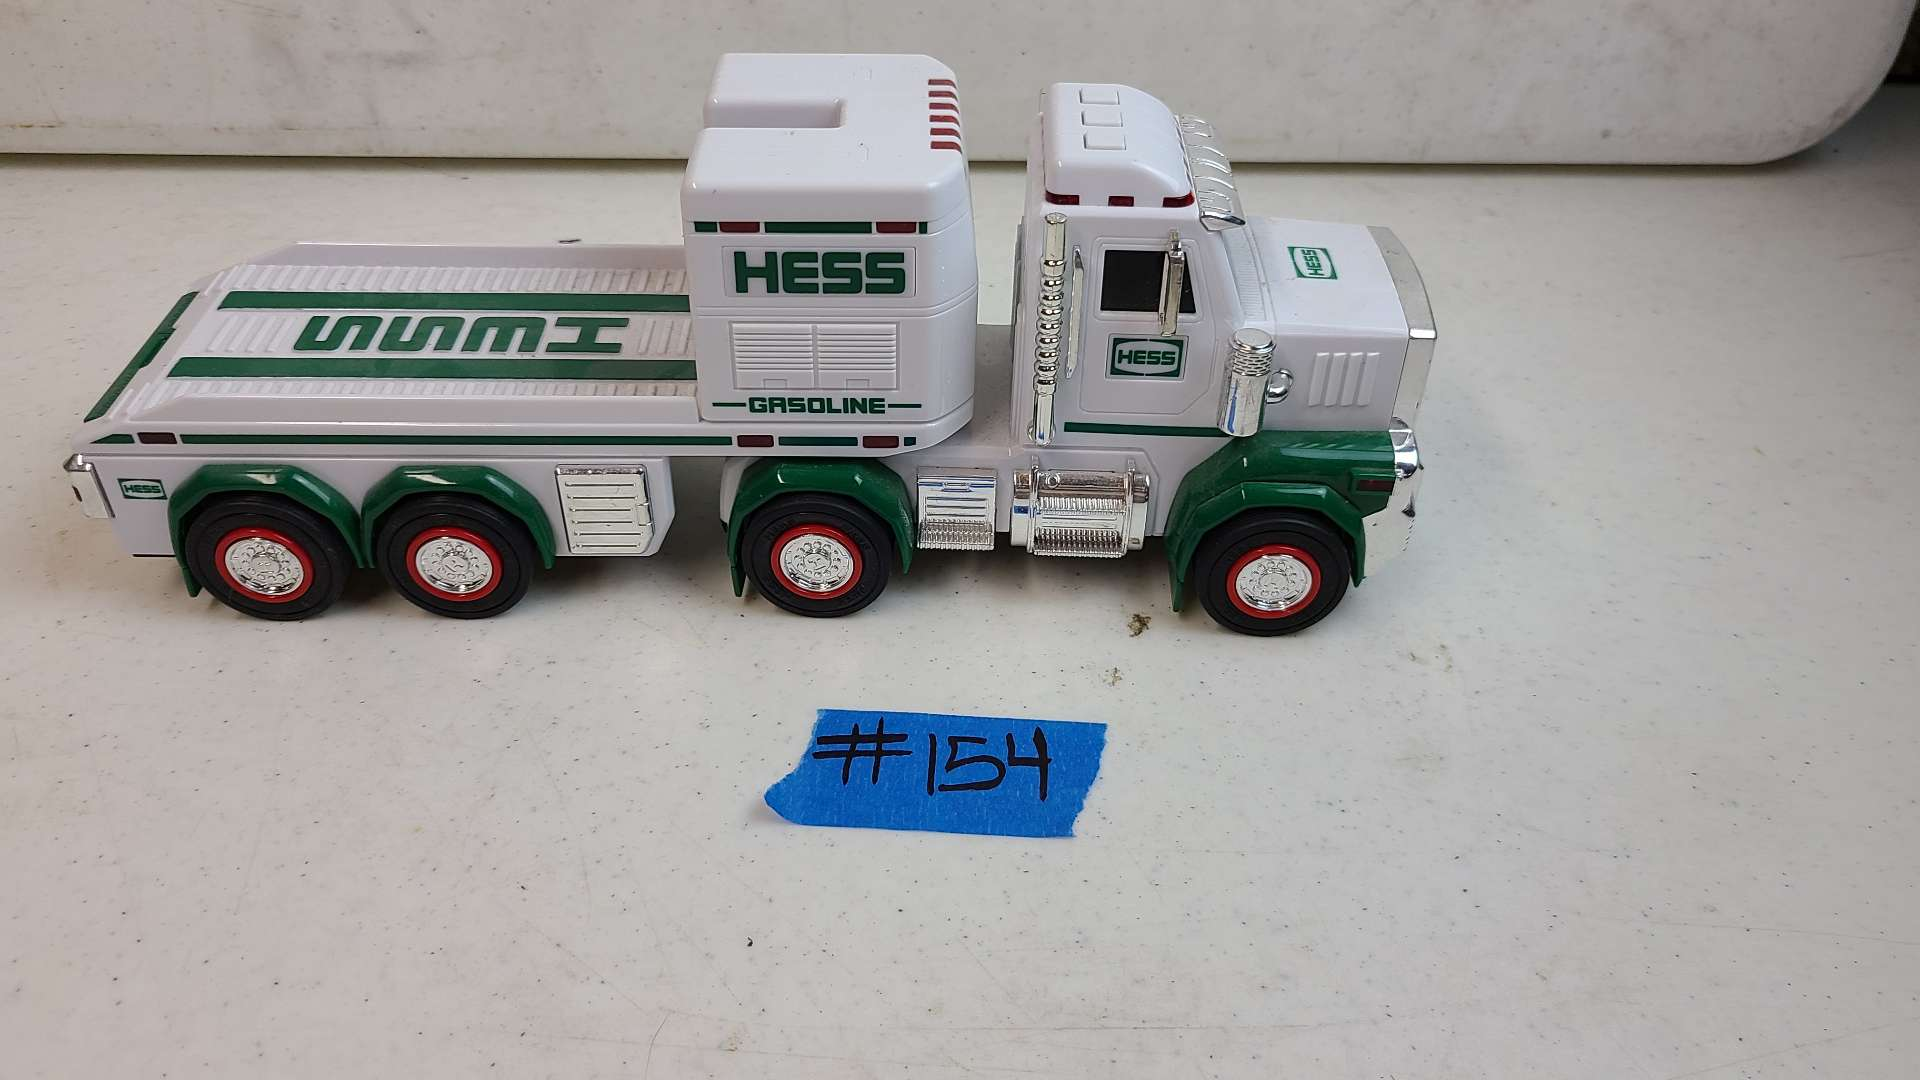 Lot # 154 HESS Truck and Trailer Toy